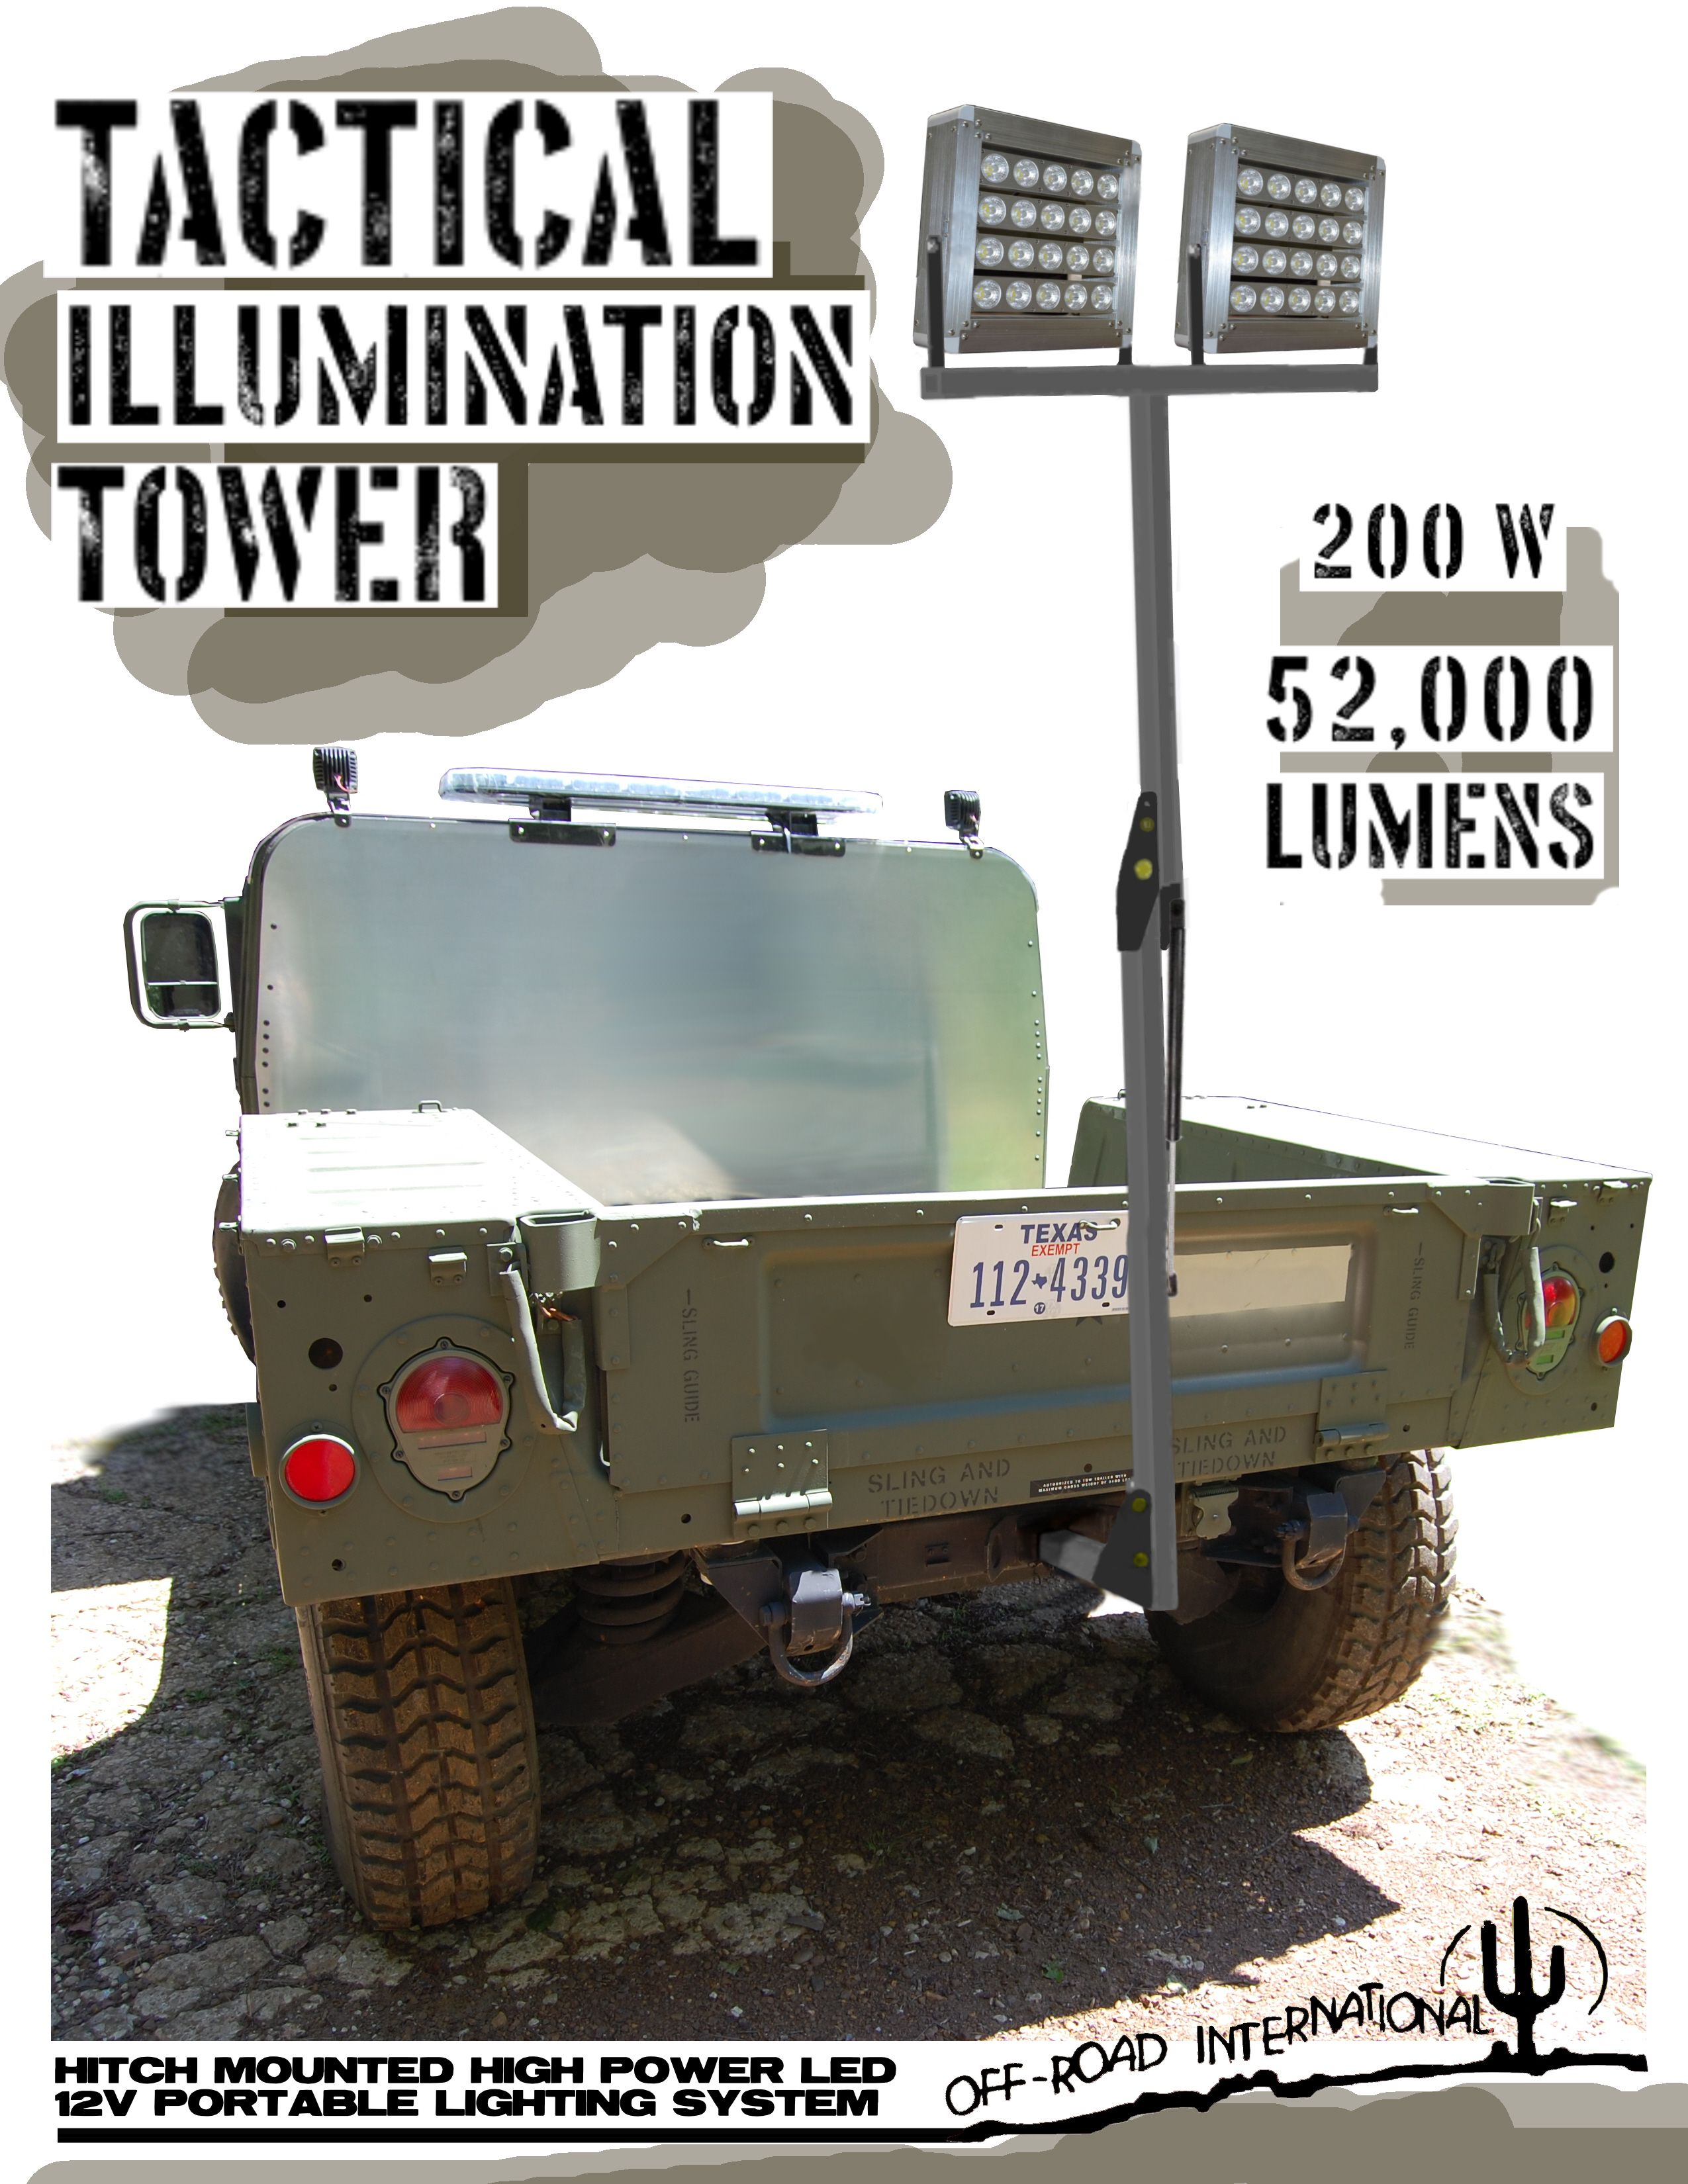 Extremely Bright Tactical Light Tower By Off Road International Installs In You Trailer Hitch Tactical Light Offroad Trailer Hitch